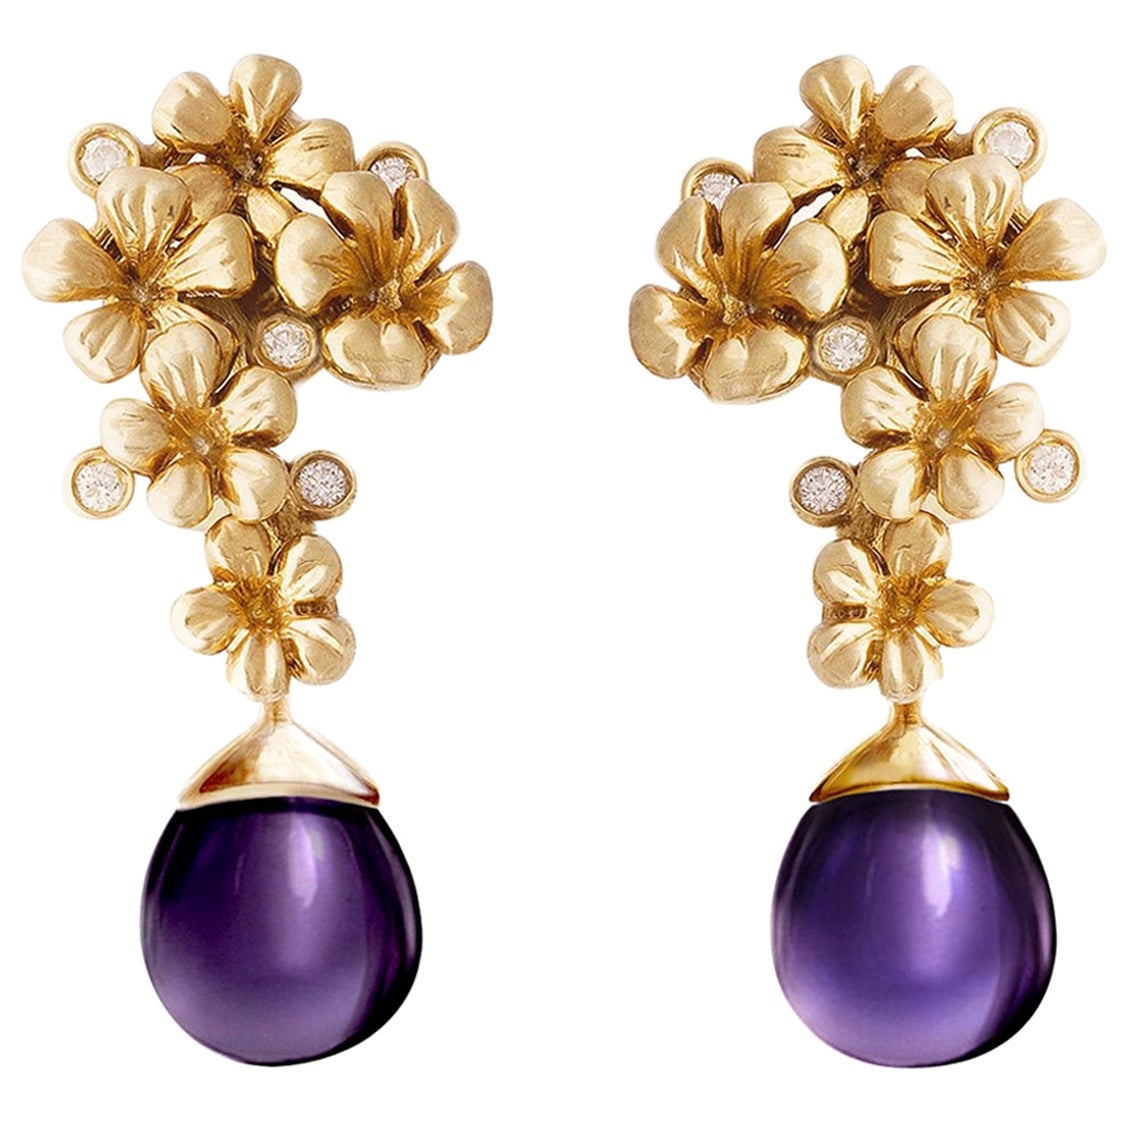 Plum Blossom Earrings by the Artist in 18 Karat Yellow Gold with Round Diamonds